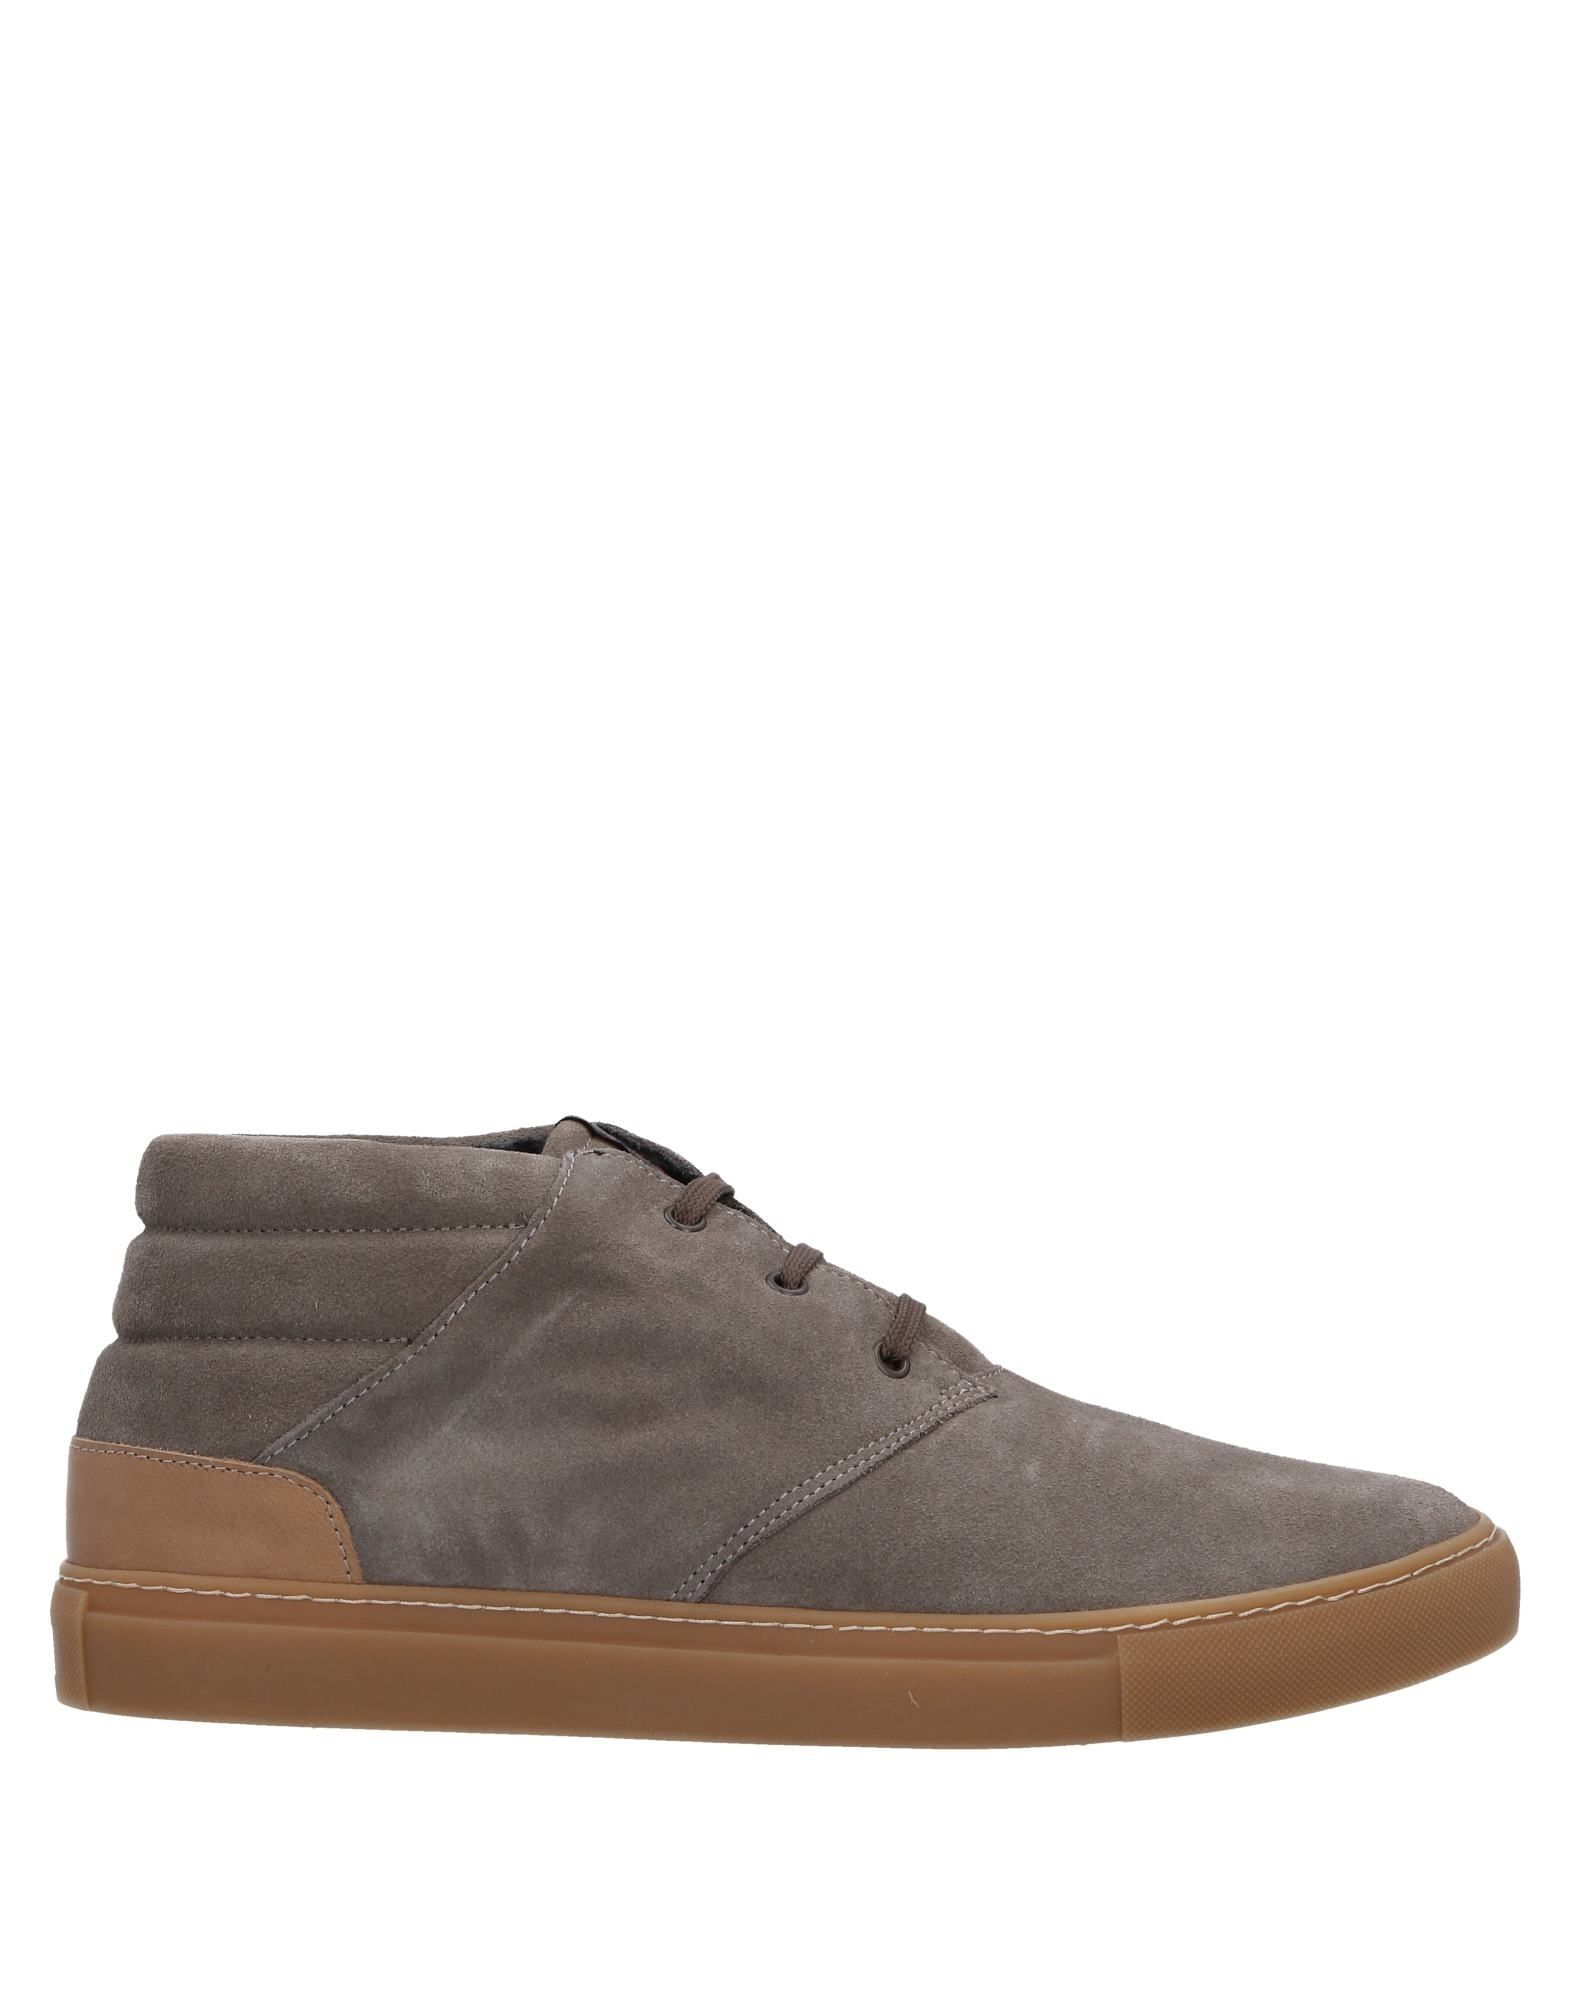 Bottine Wally Walker Homme - Bottines Wally Walker  Gris Meilleur modèle de vente